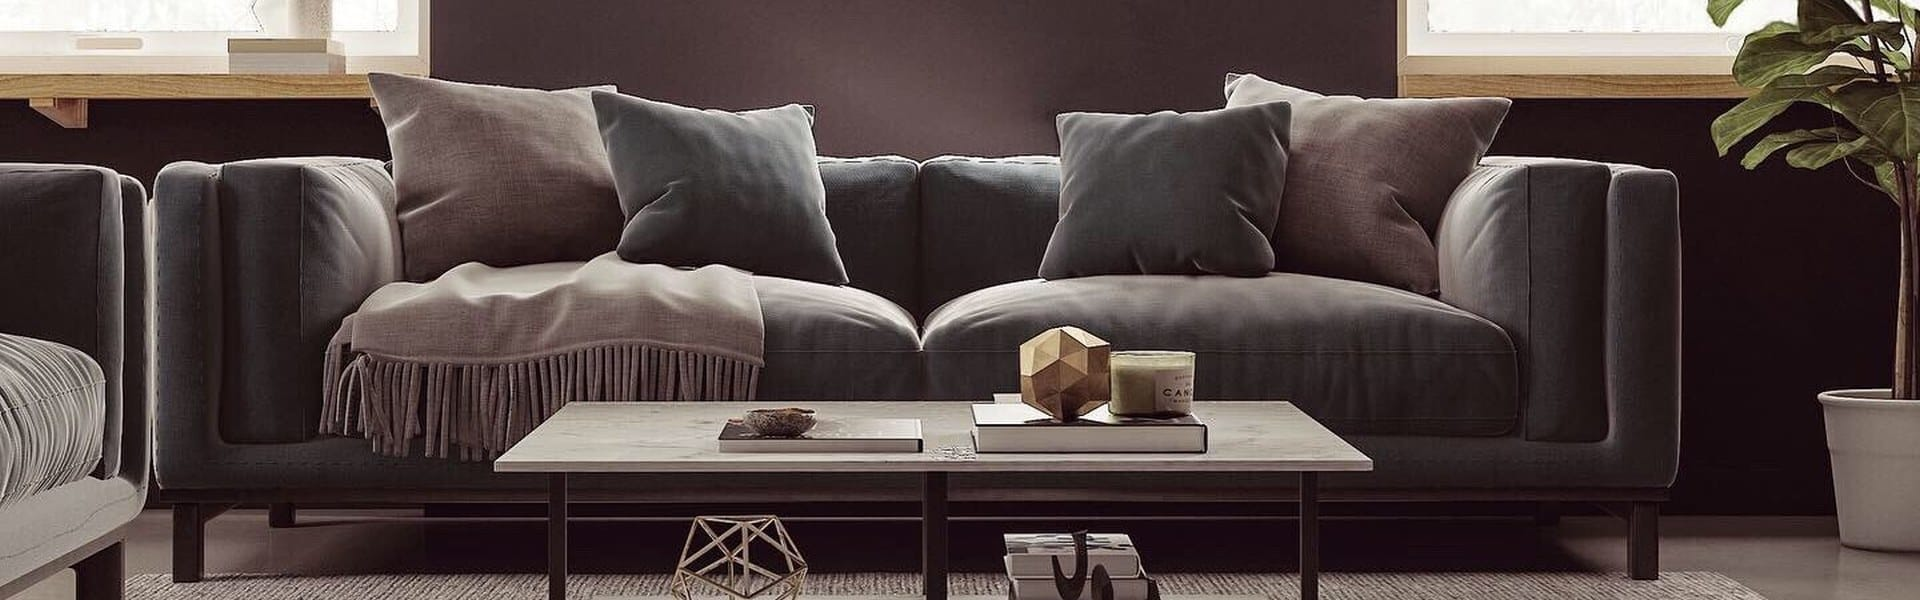 A gray sofa and coffee table